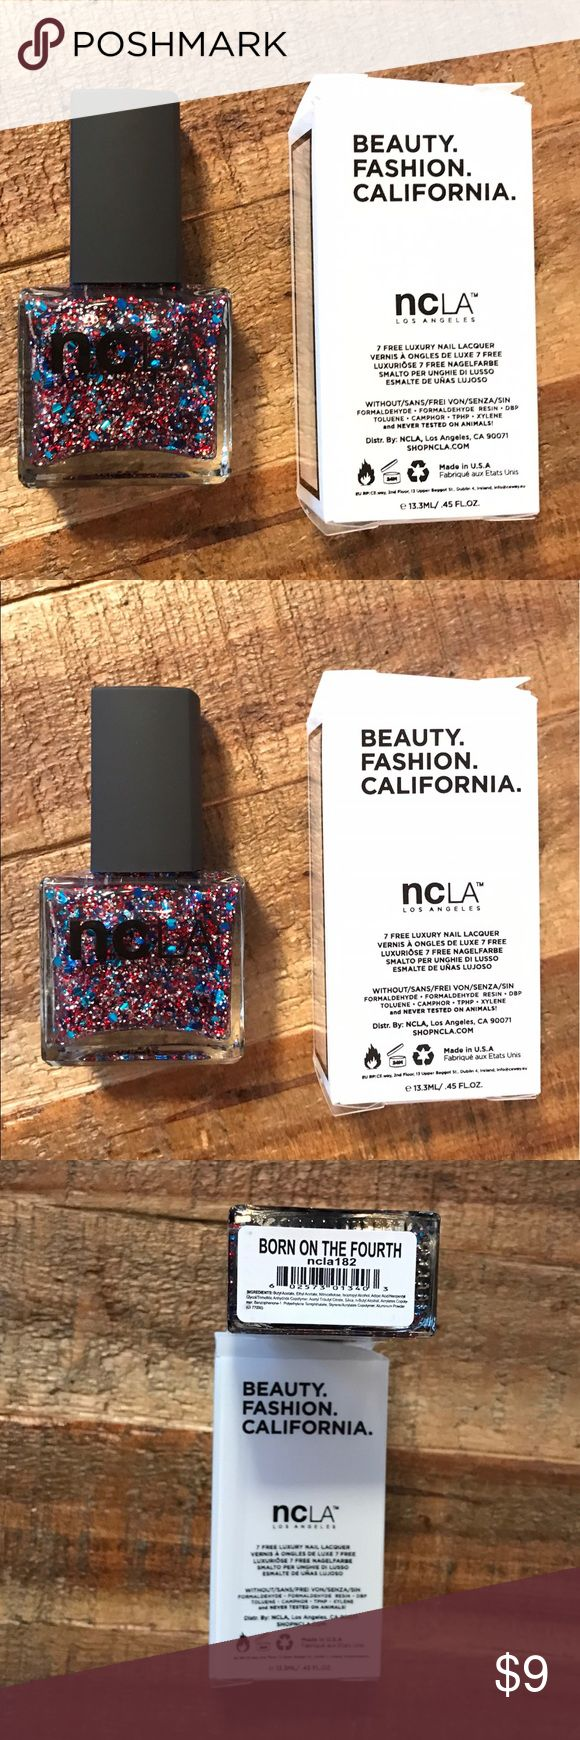 New NCLA Nail Lacquer- Born This Way Brand new in box, unopened! Retails for $18 NCLA Los Angeles Luxury Nail Lacquer in Born on the 4th Full size! 7 Free! Perfect for Independence Day - From smoke free home Bundle for discounts! Offers ok:) - #ncla #nclalosangeles #nclanaillacquer #naillacquer #nailpolish #polish #new #nwt #7free #7freecosmetics #makeup #nailcare ##manicure #luxurypolish #nailcolor #iso #isoncla Sephora Makeup